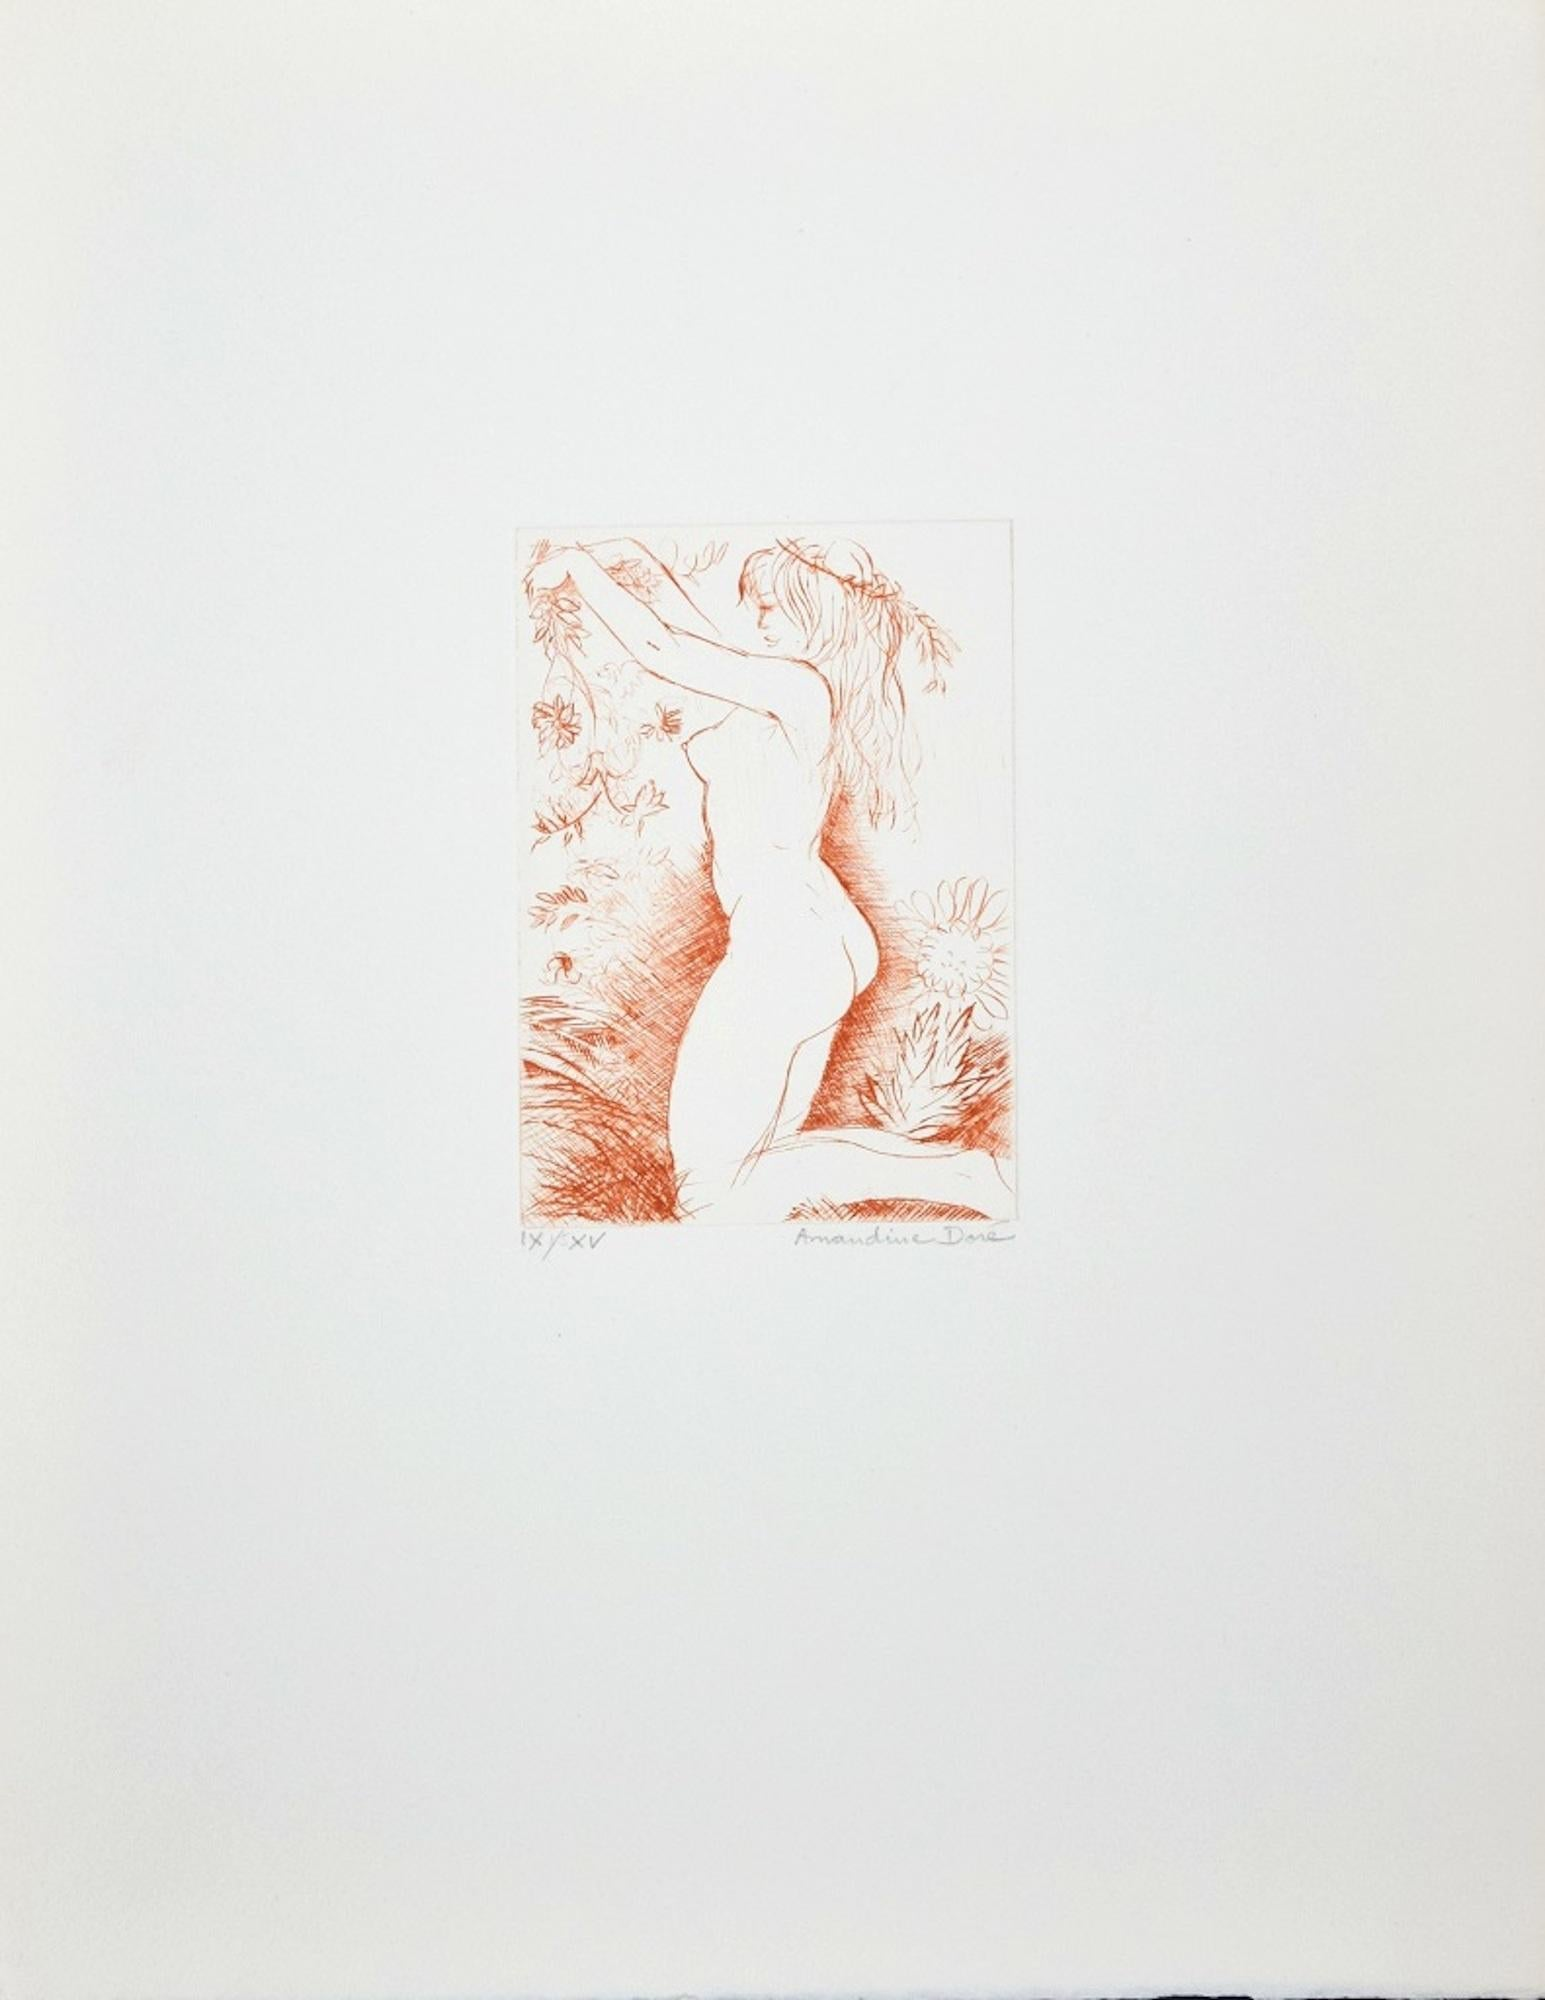 Nude Woman with Flowers - Original Etching ad Drypoint by A. Doré - 1950s